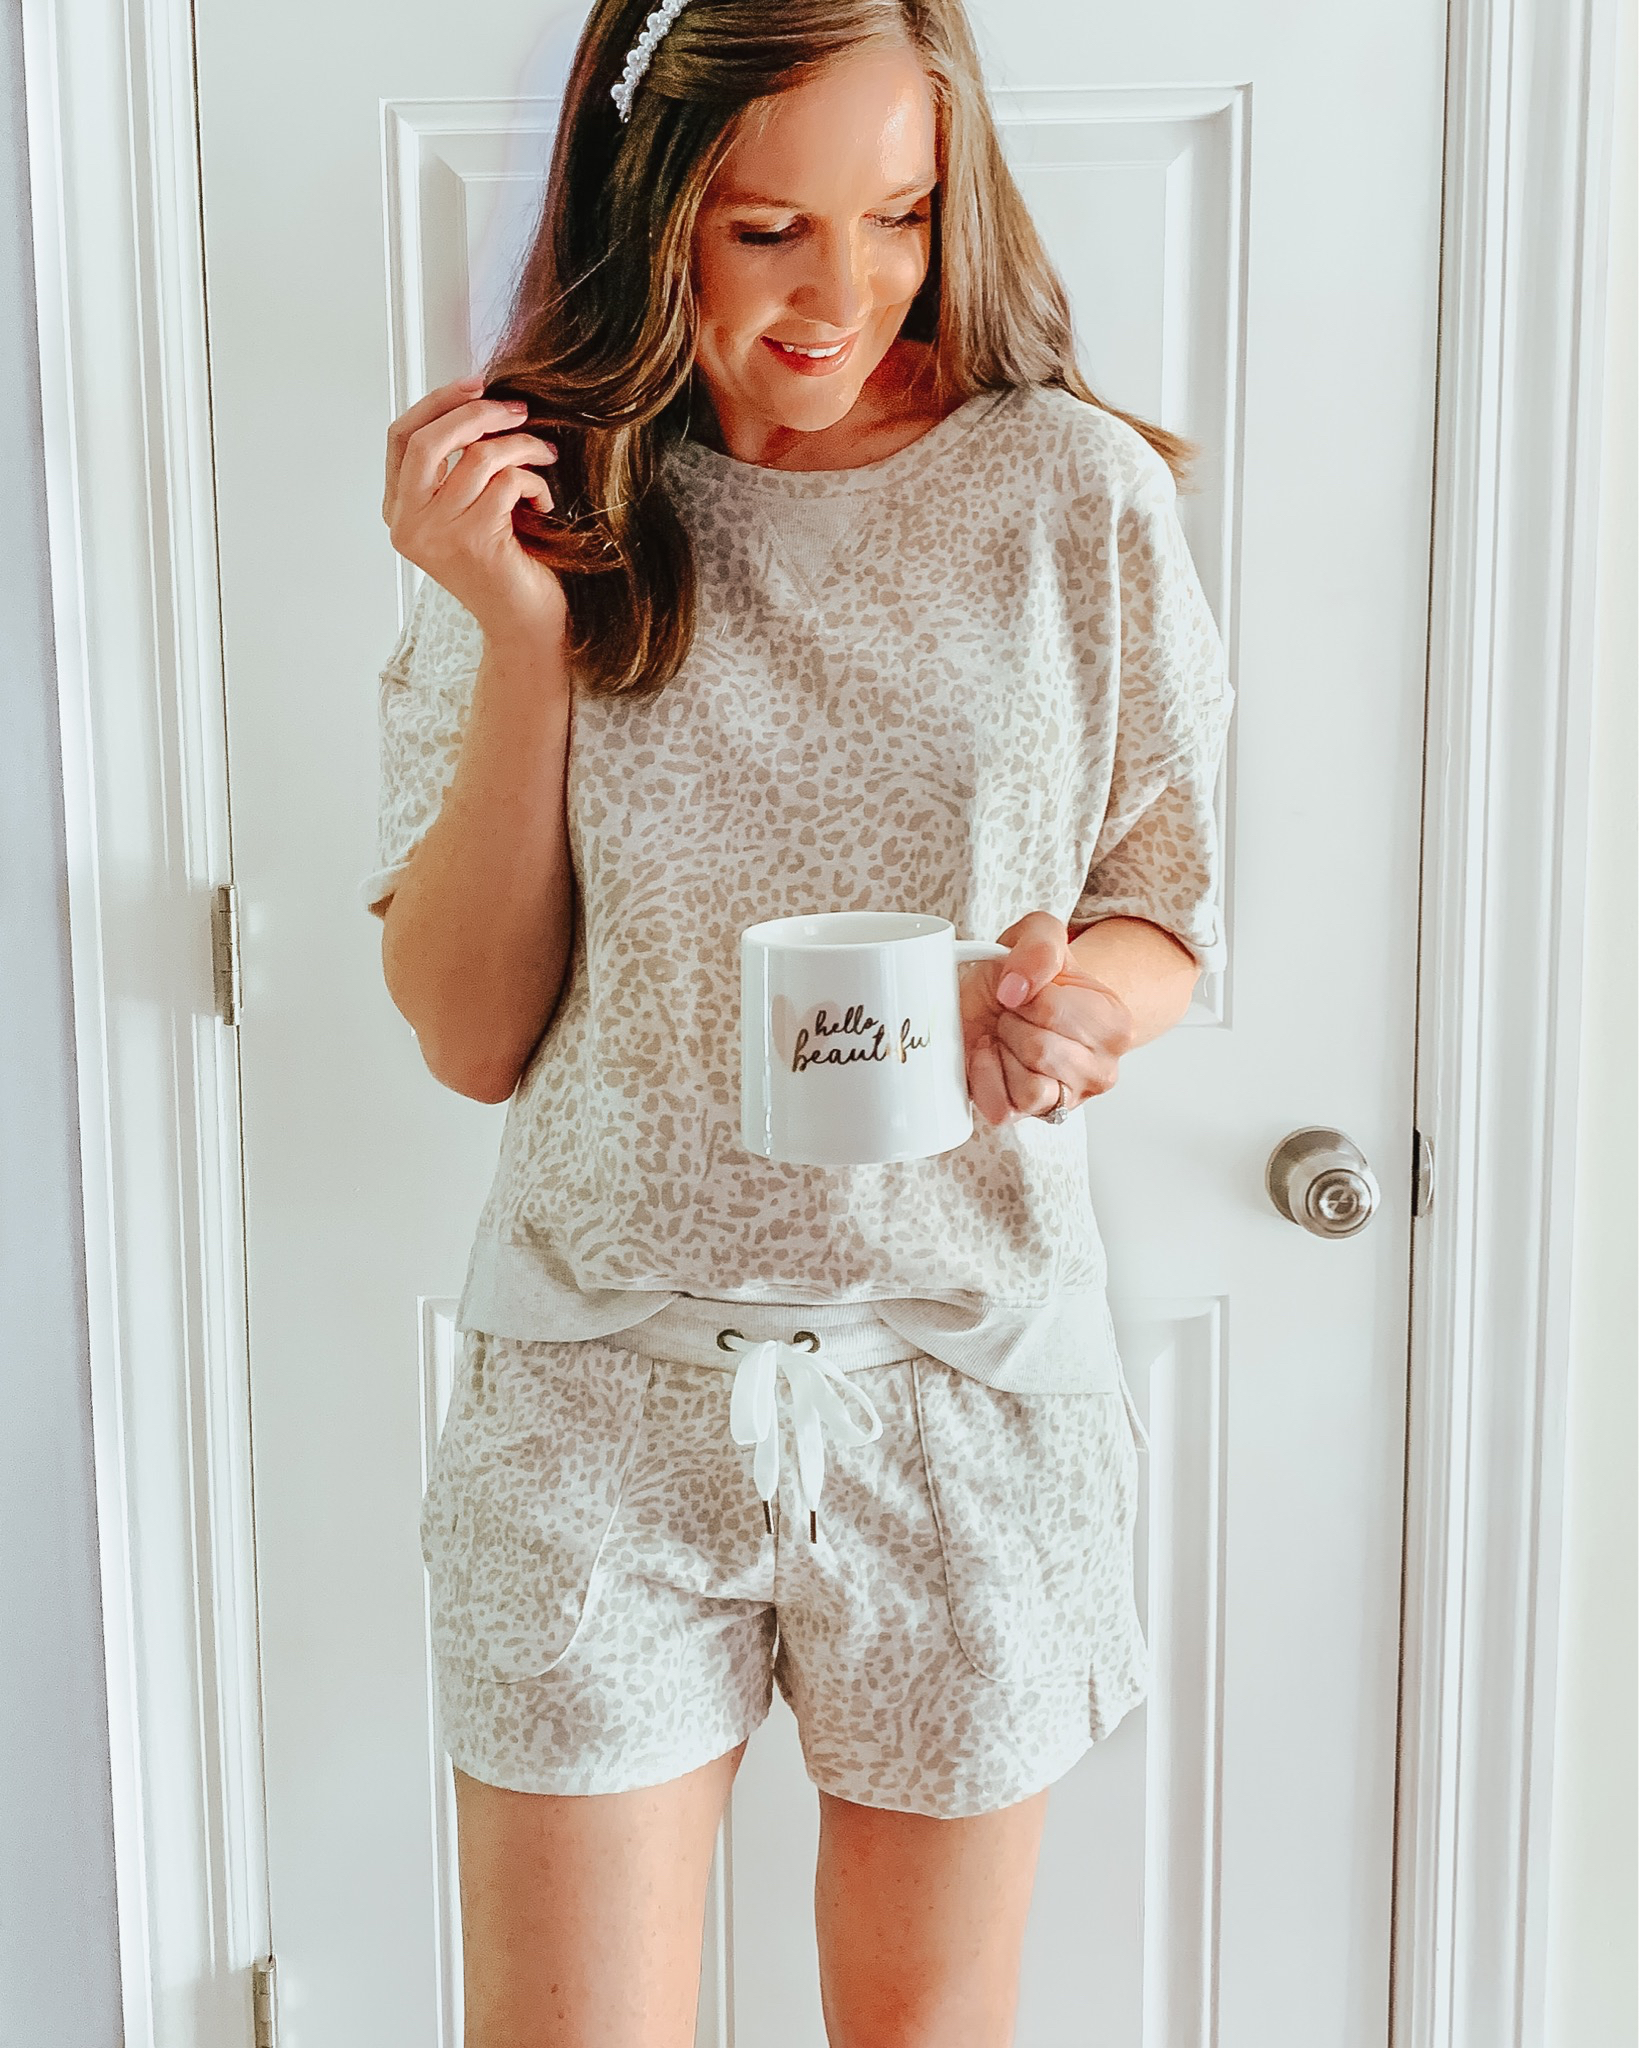 how to shop social media, Target leopard loungewear